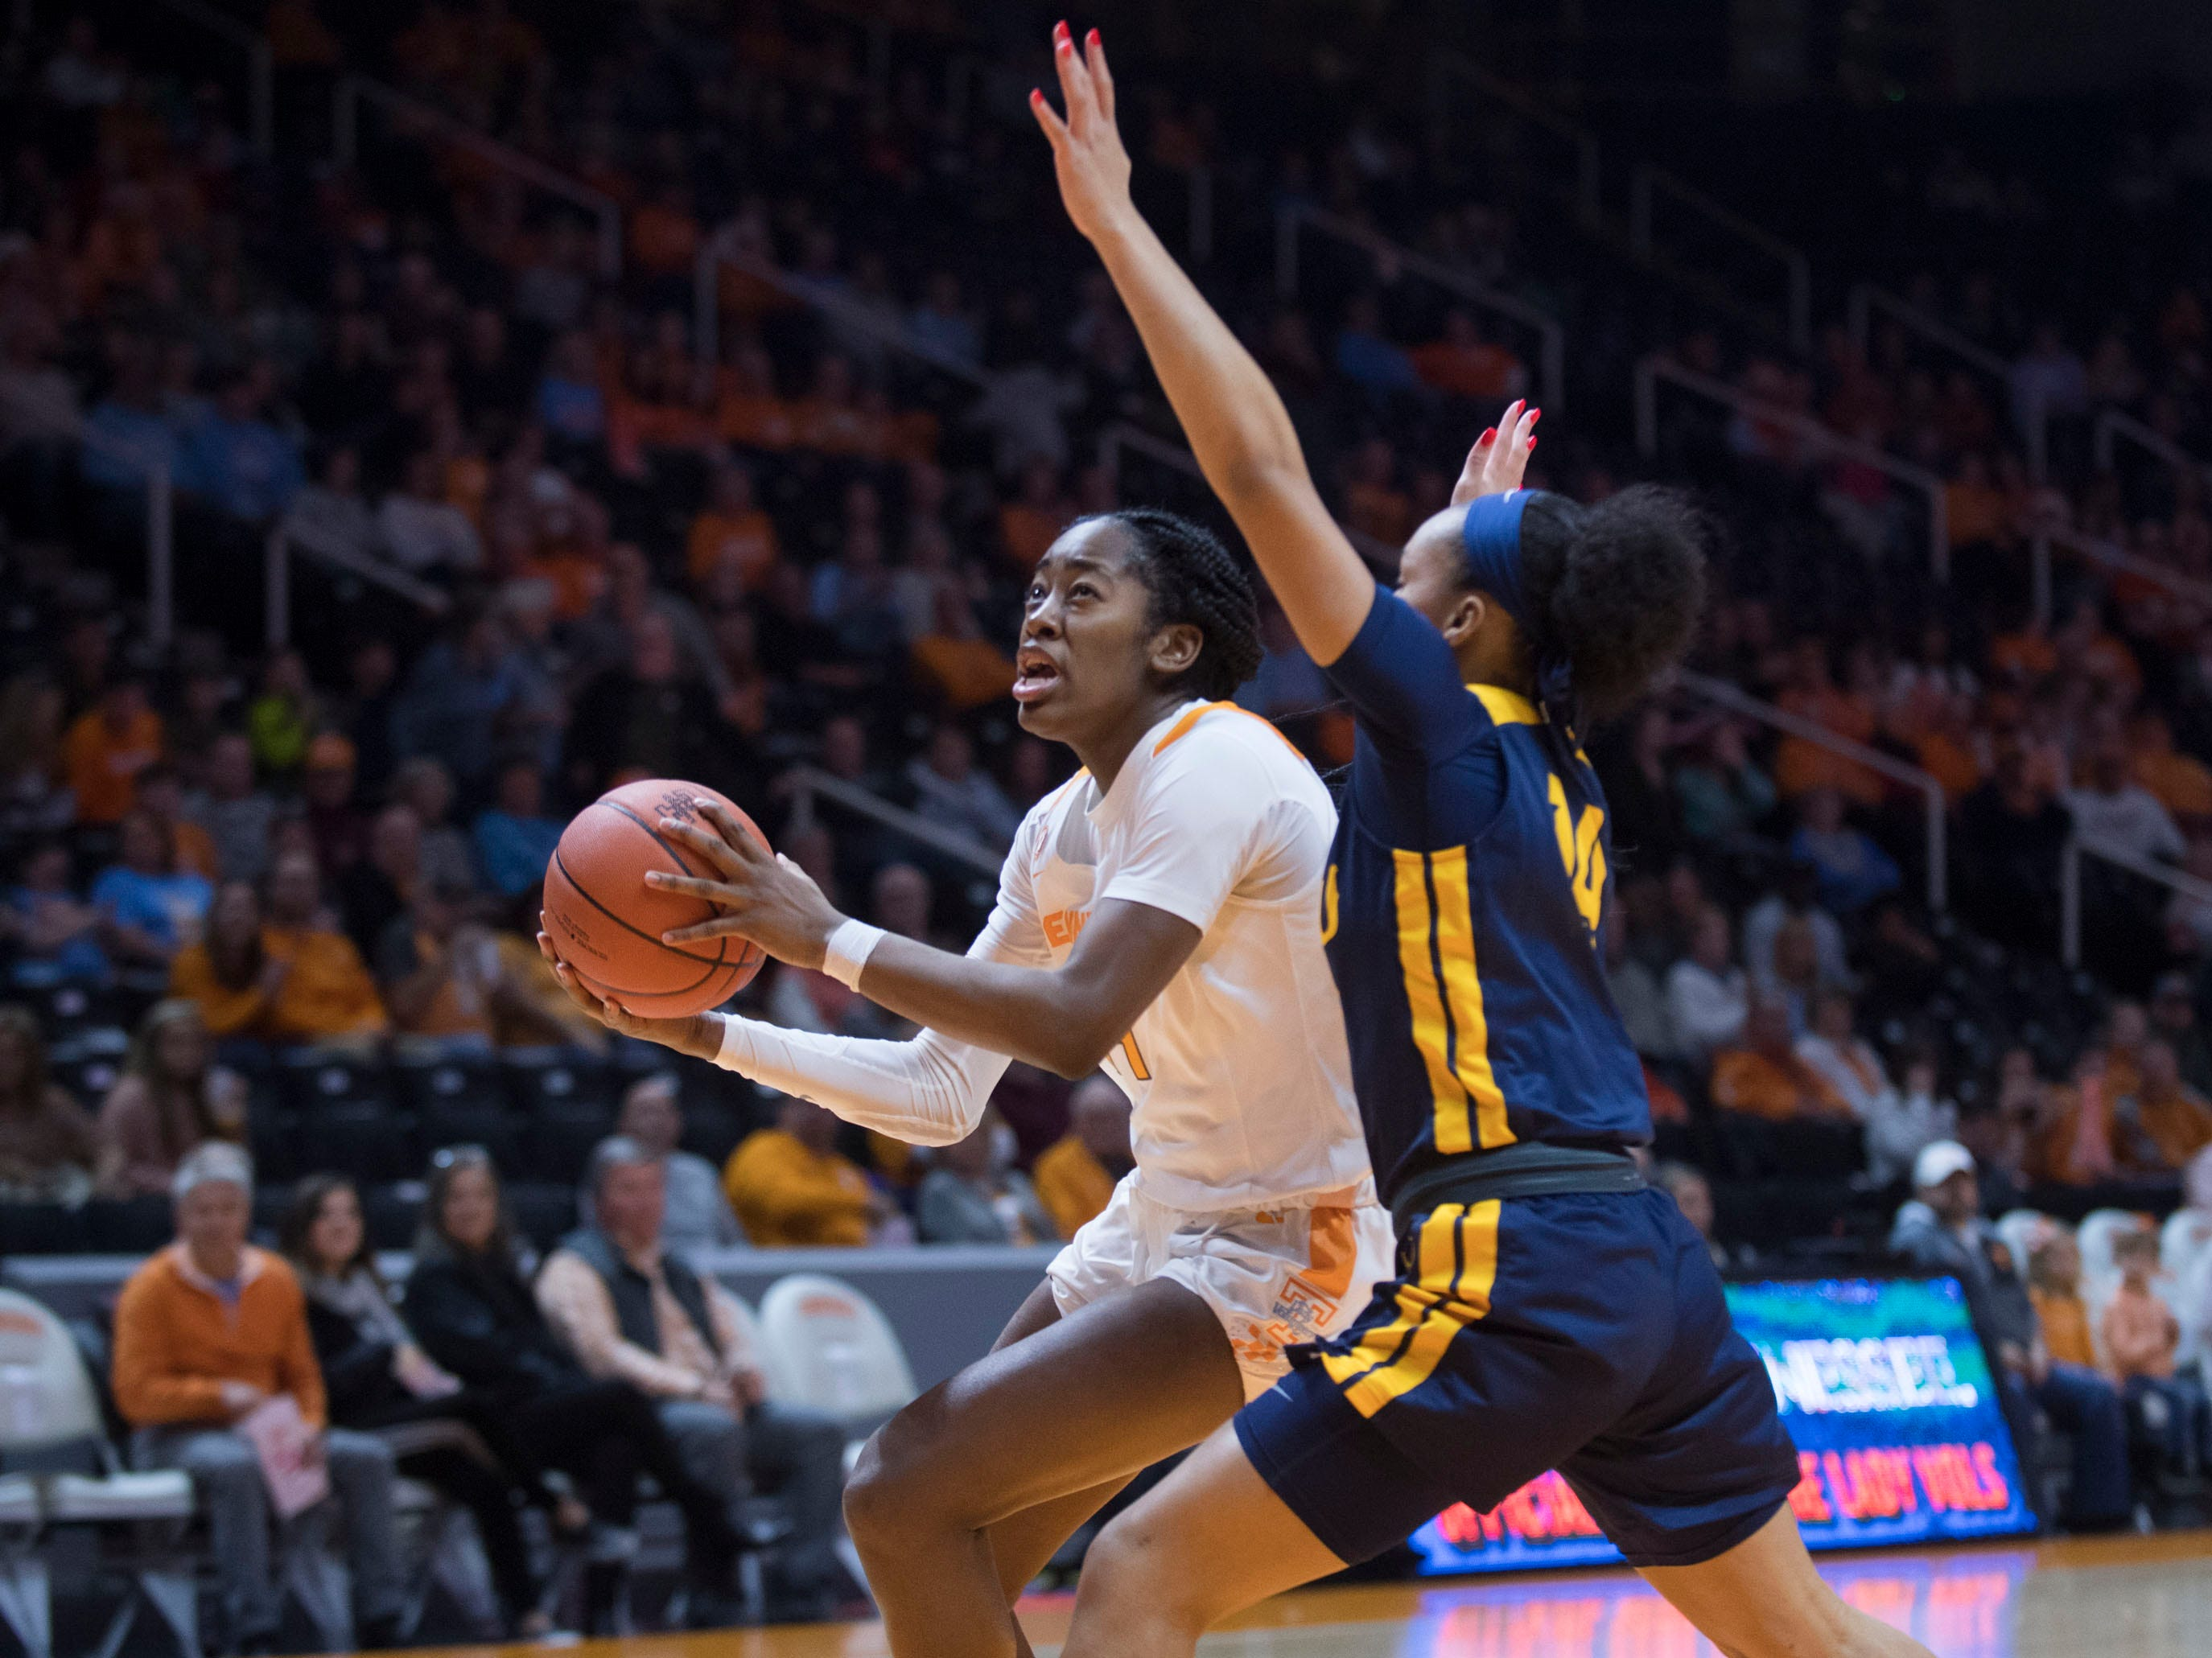 Tennessee's Zaay Green (14) looks to the basket while defended by ETSU's Kaia Upton (14) on Friday, December 21, 2018.